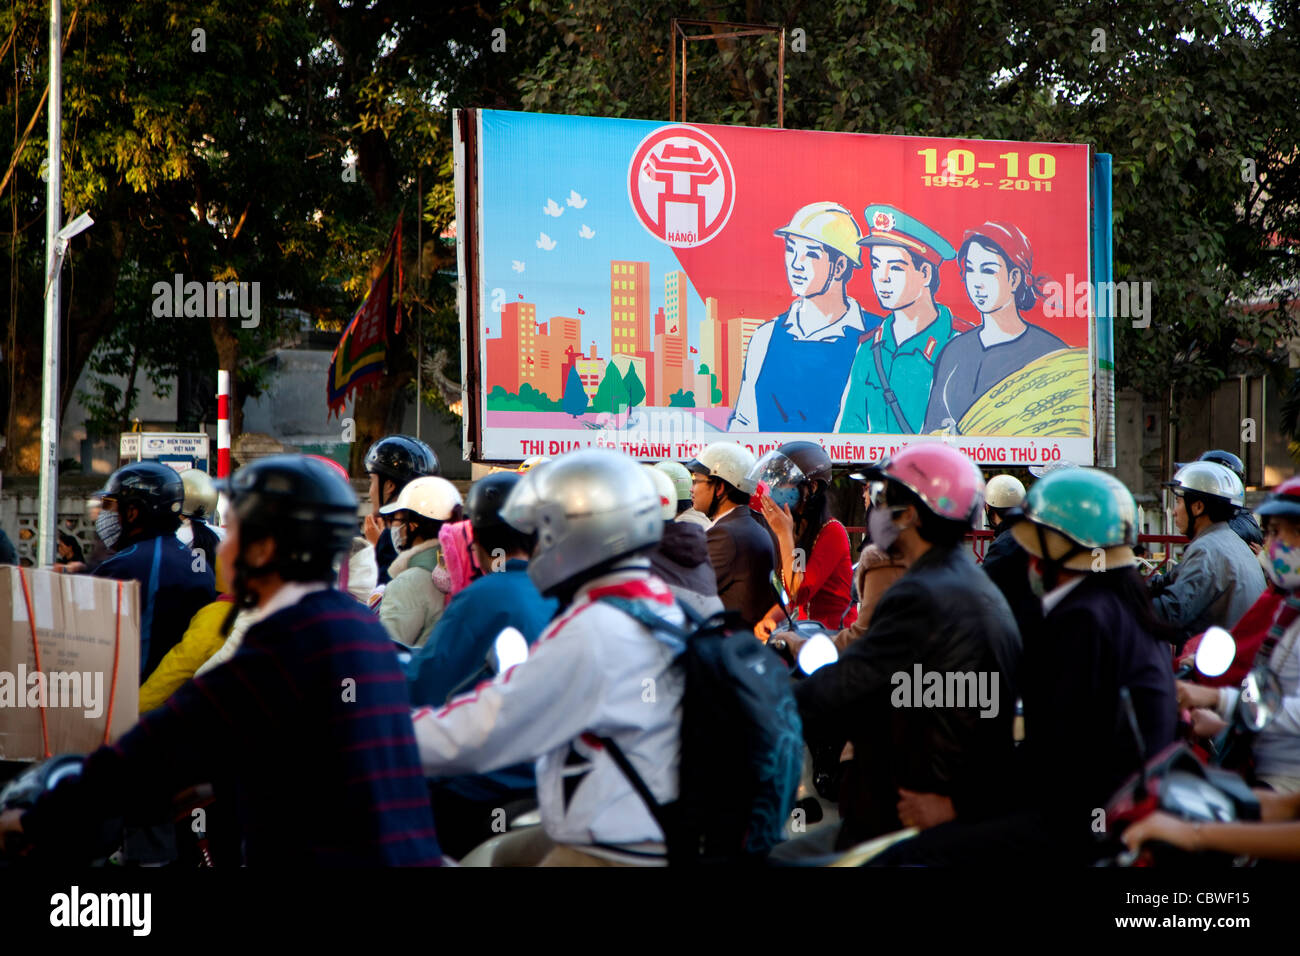 Propaganda sign and traffic in Hanoi, Vietnam, Asia - Stock Image